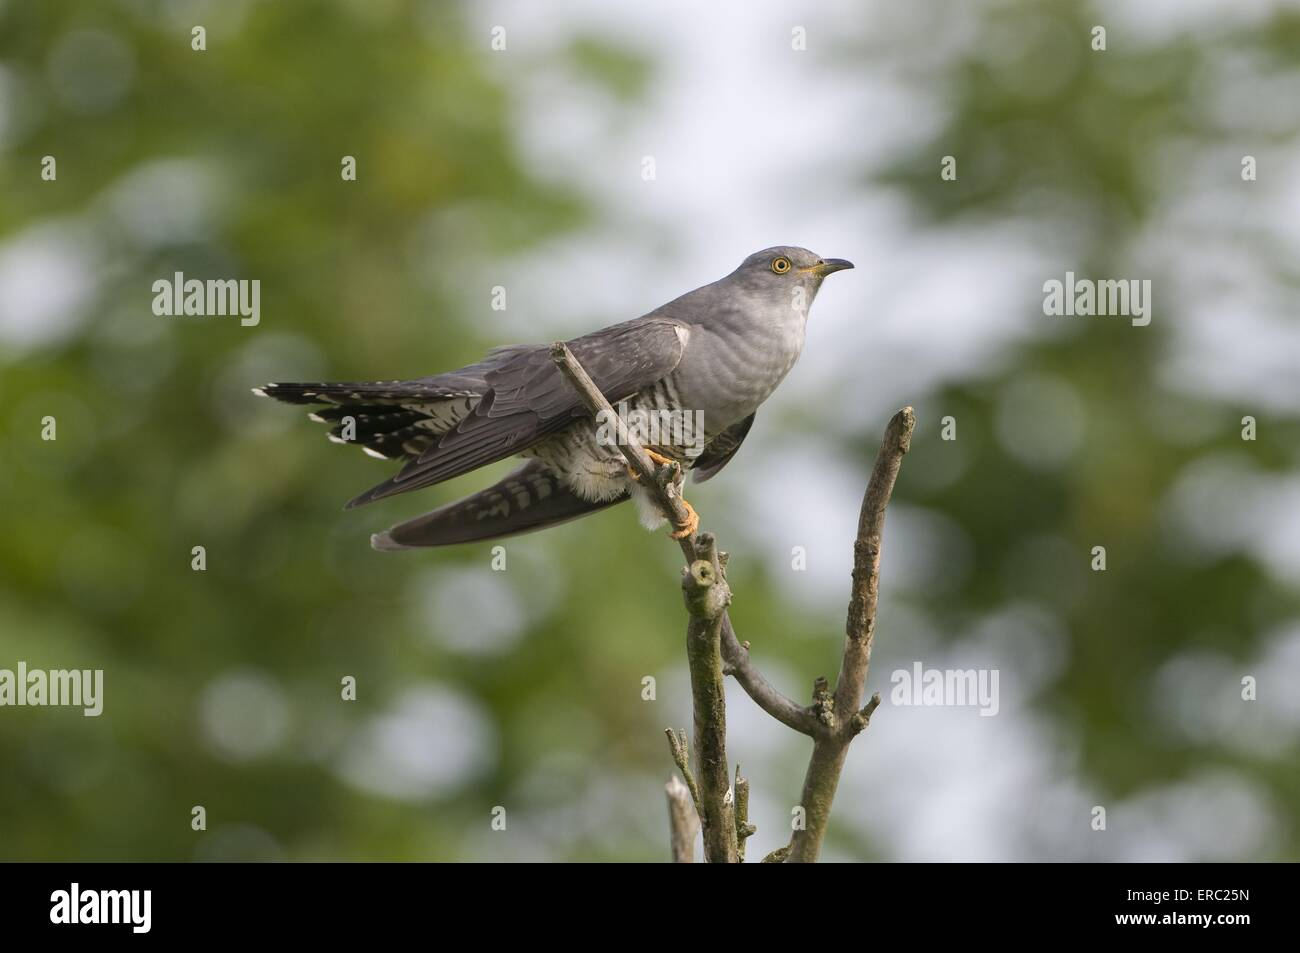 common cuckoo - Stock Image